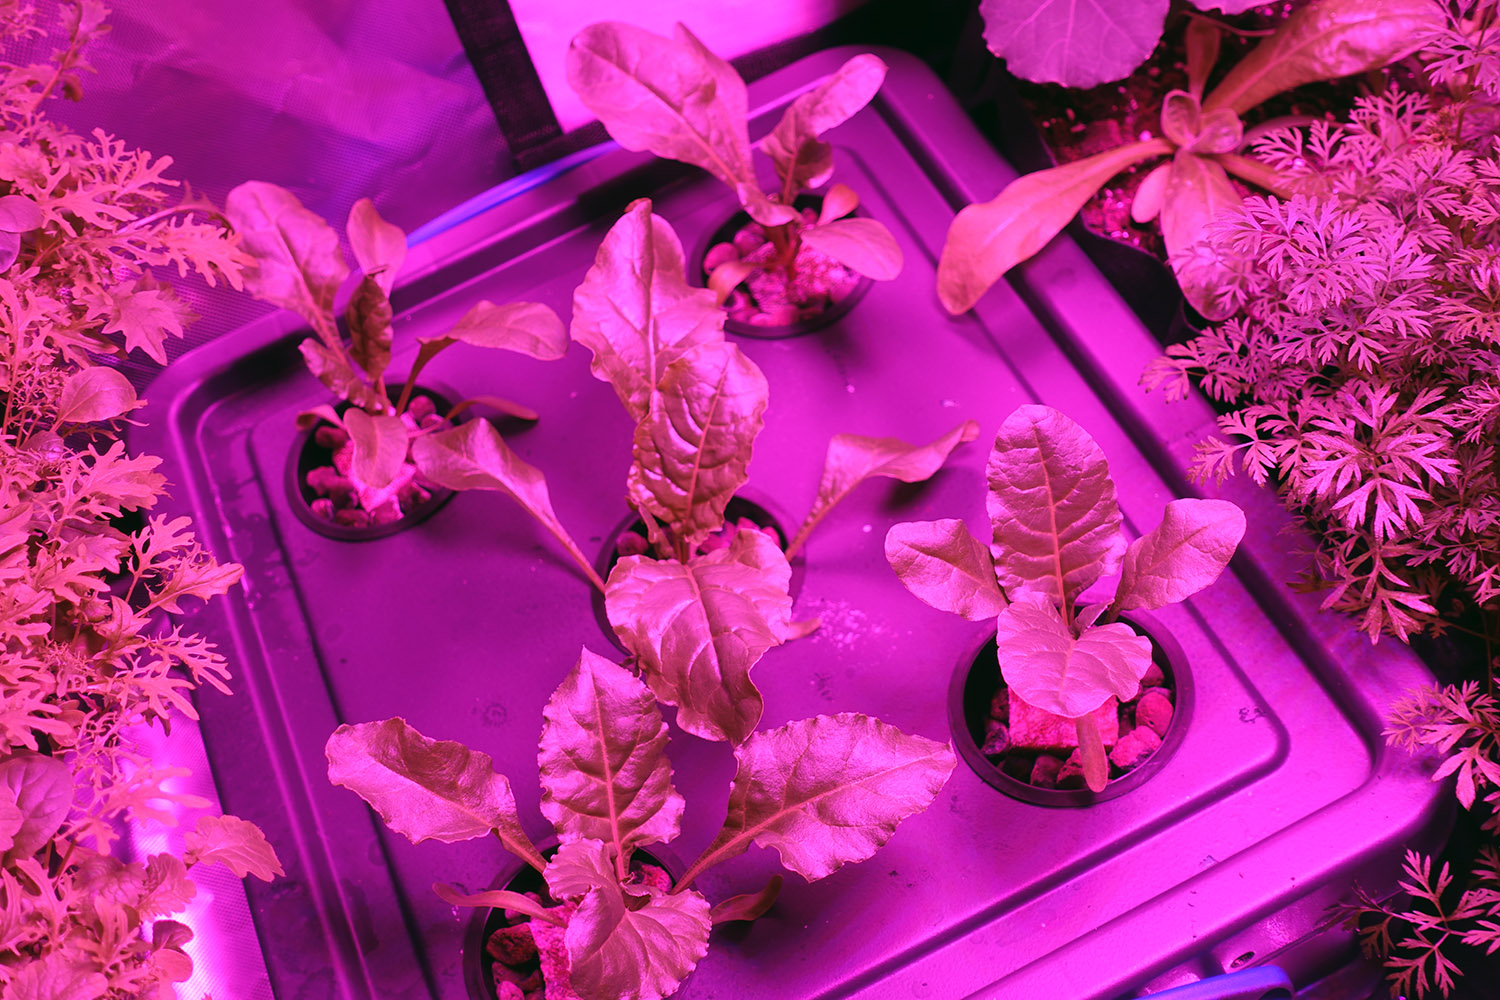 My passive hydroponic system and spinach grown following the Kratky method